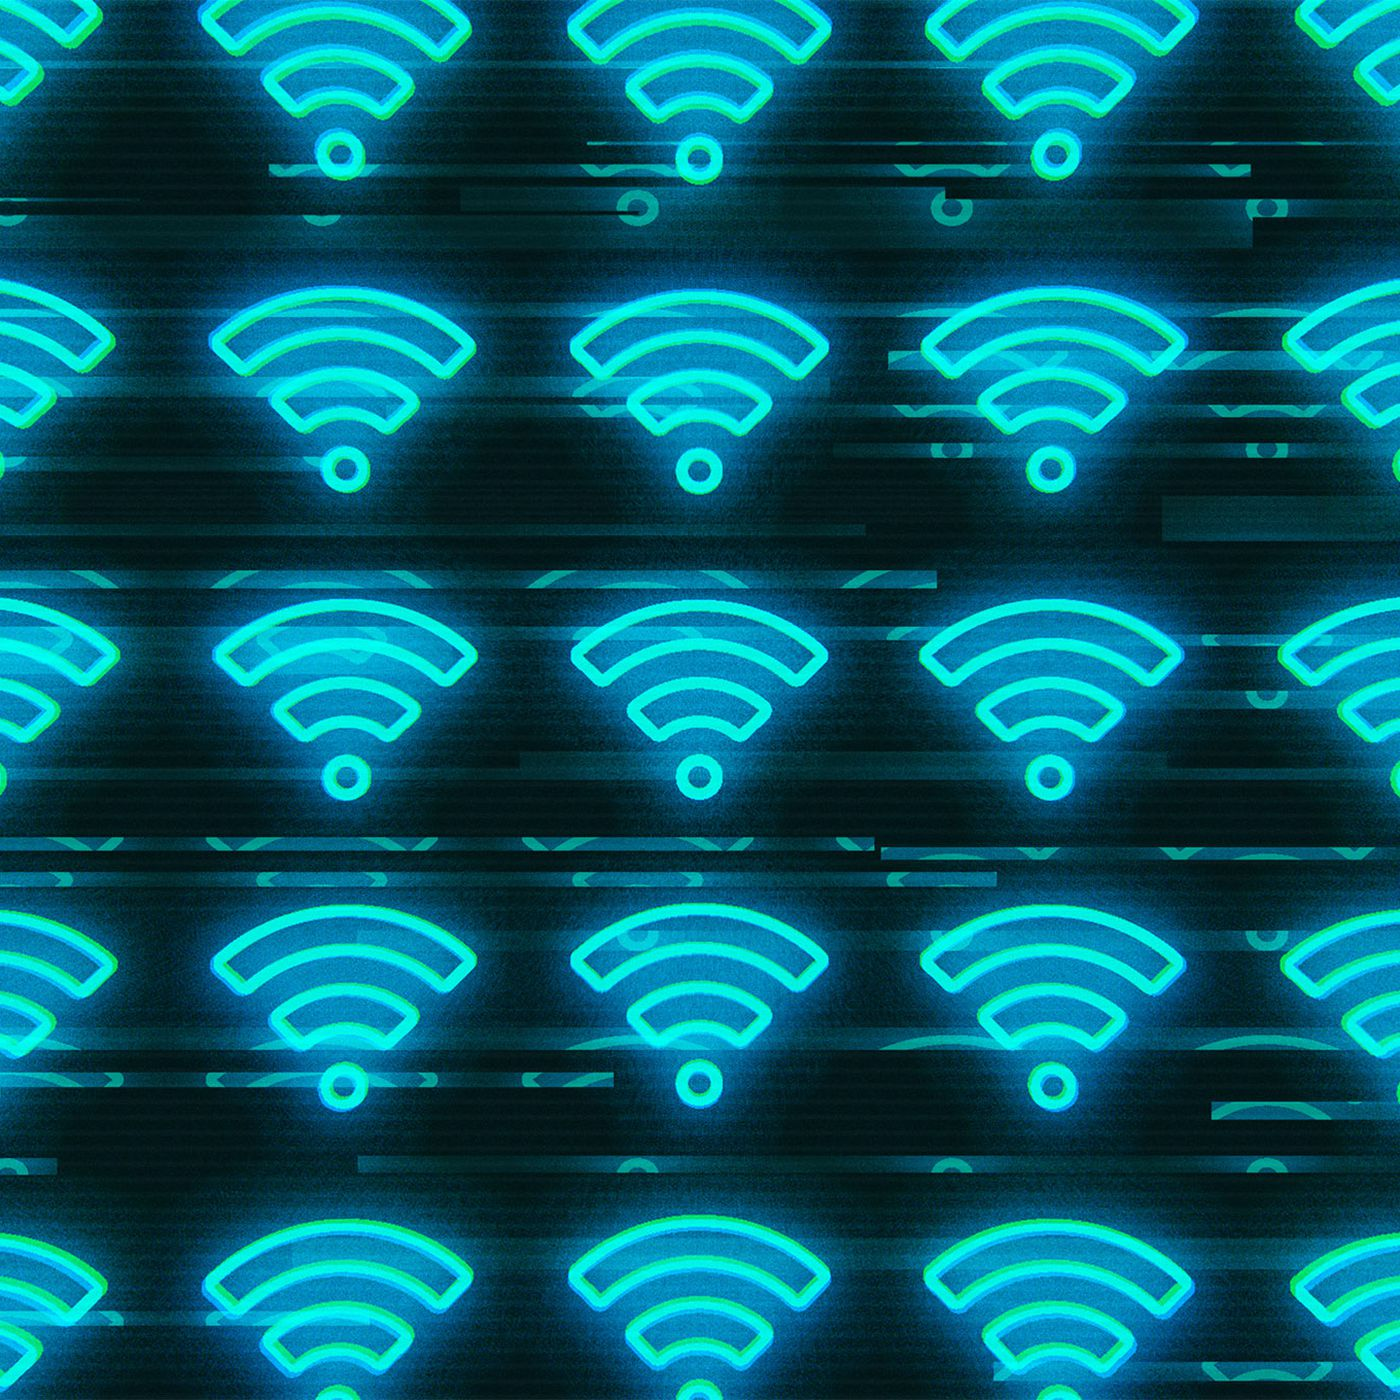 Wi-Fi 6, explained: how fast it really is - The Verge